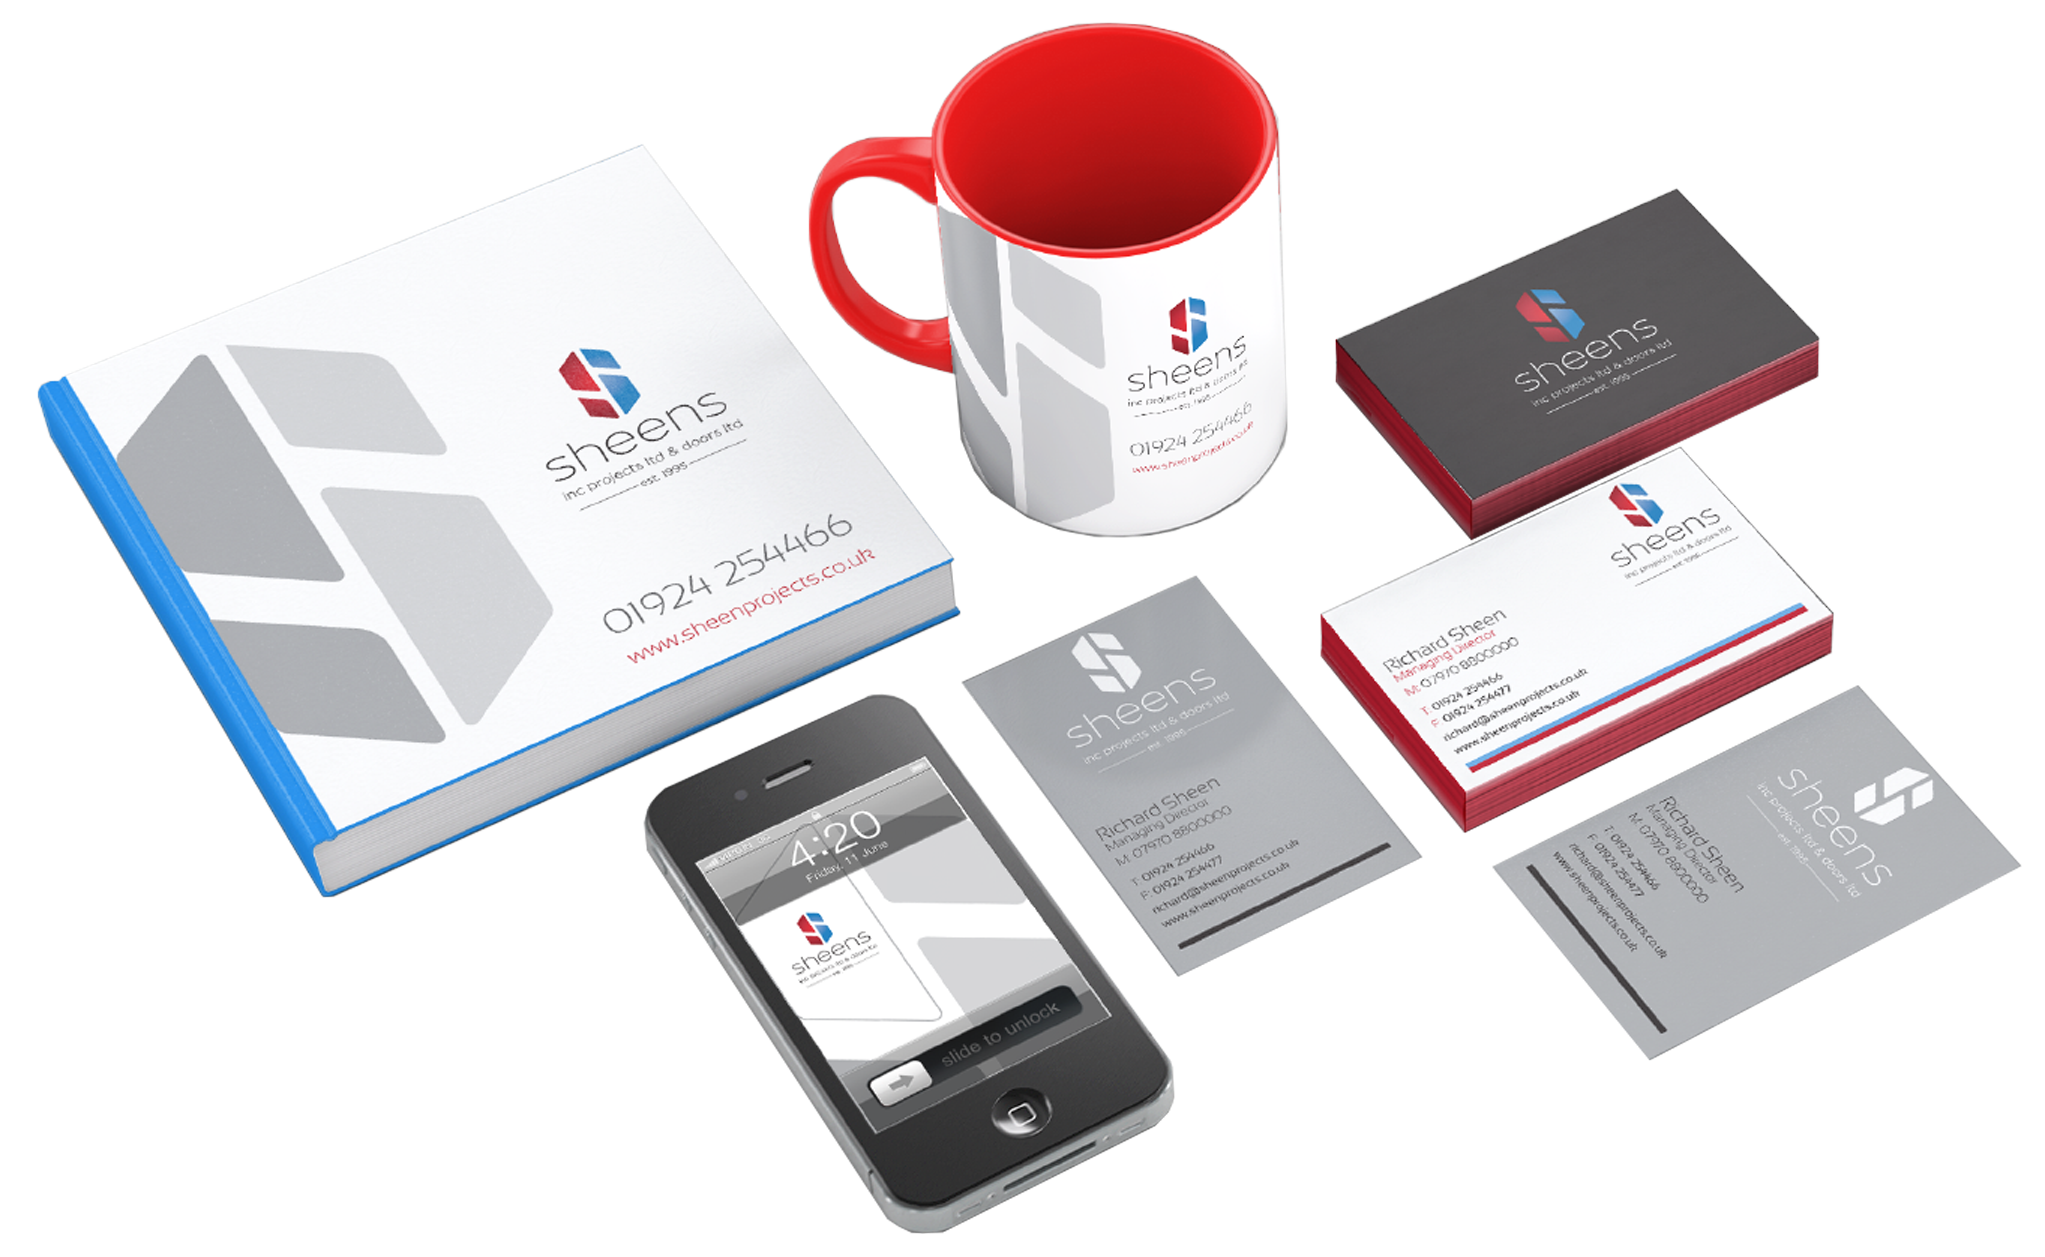 Various Sheens stationary, branding created by thumbprint media.